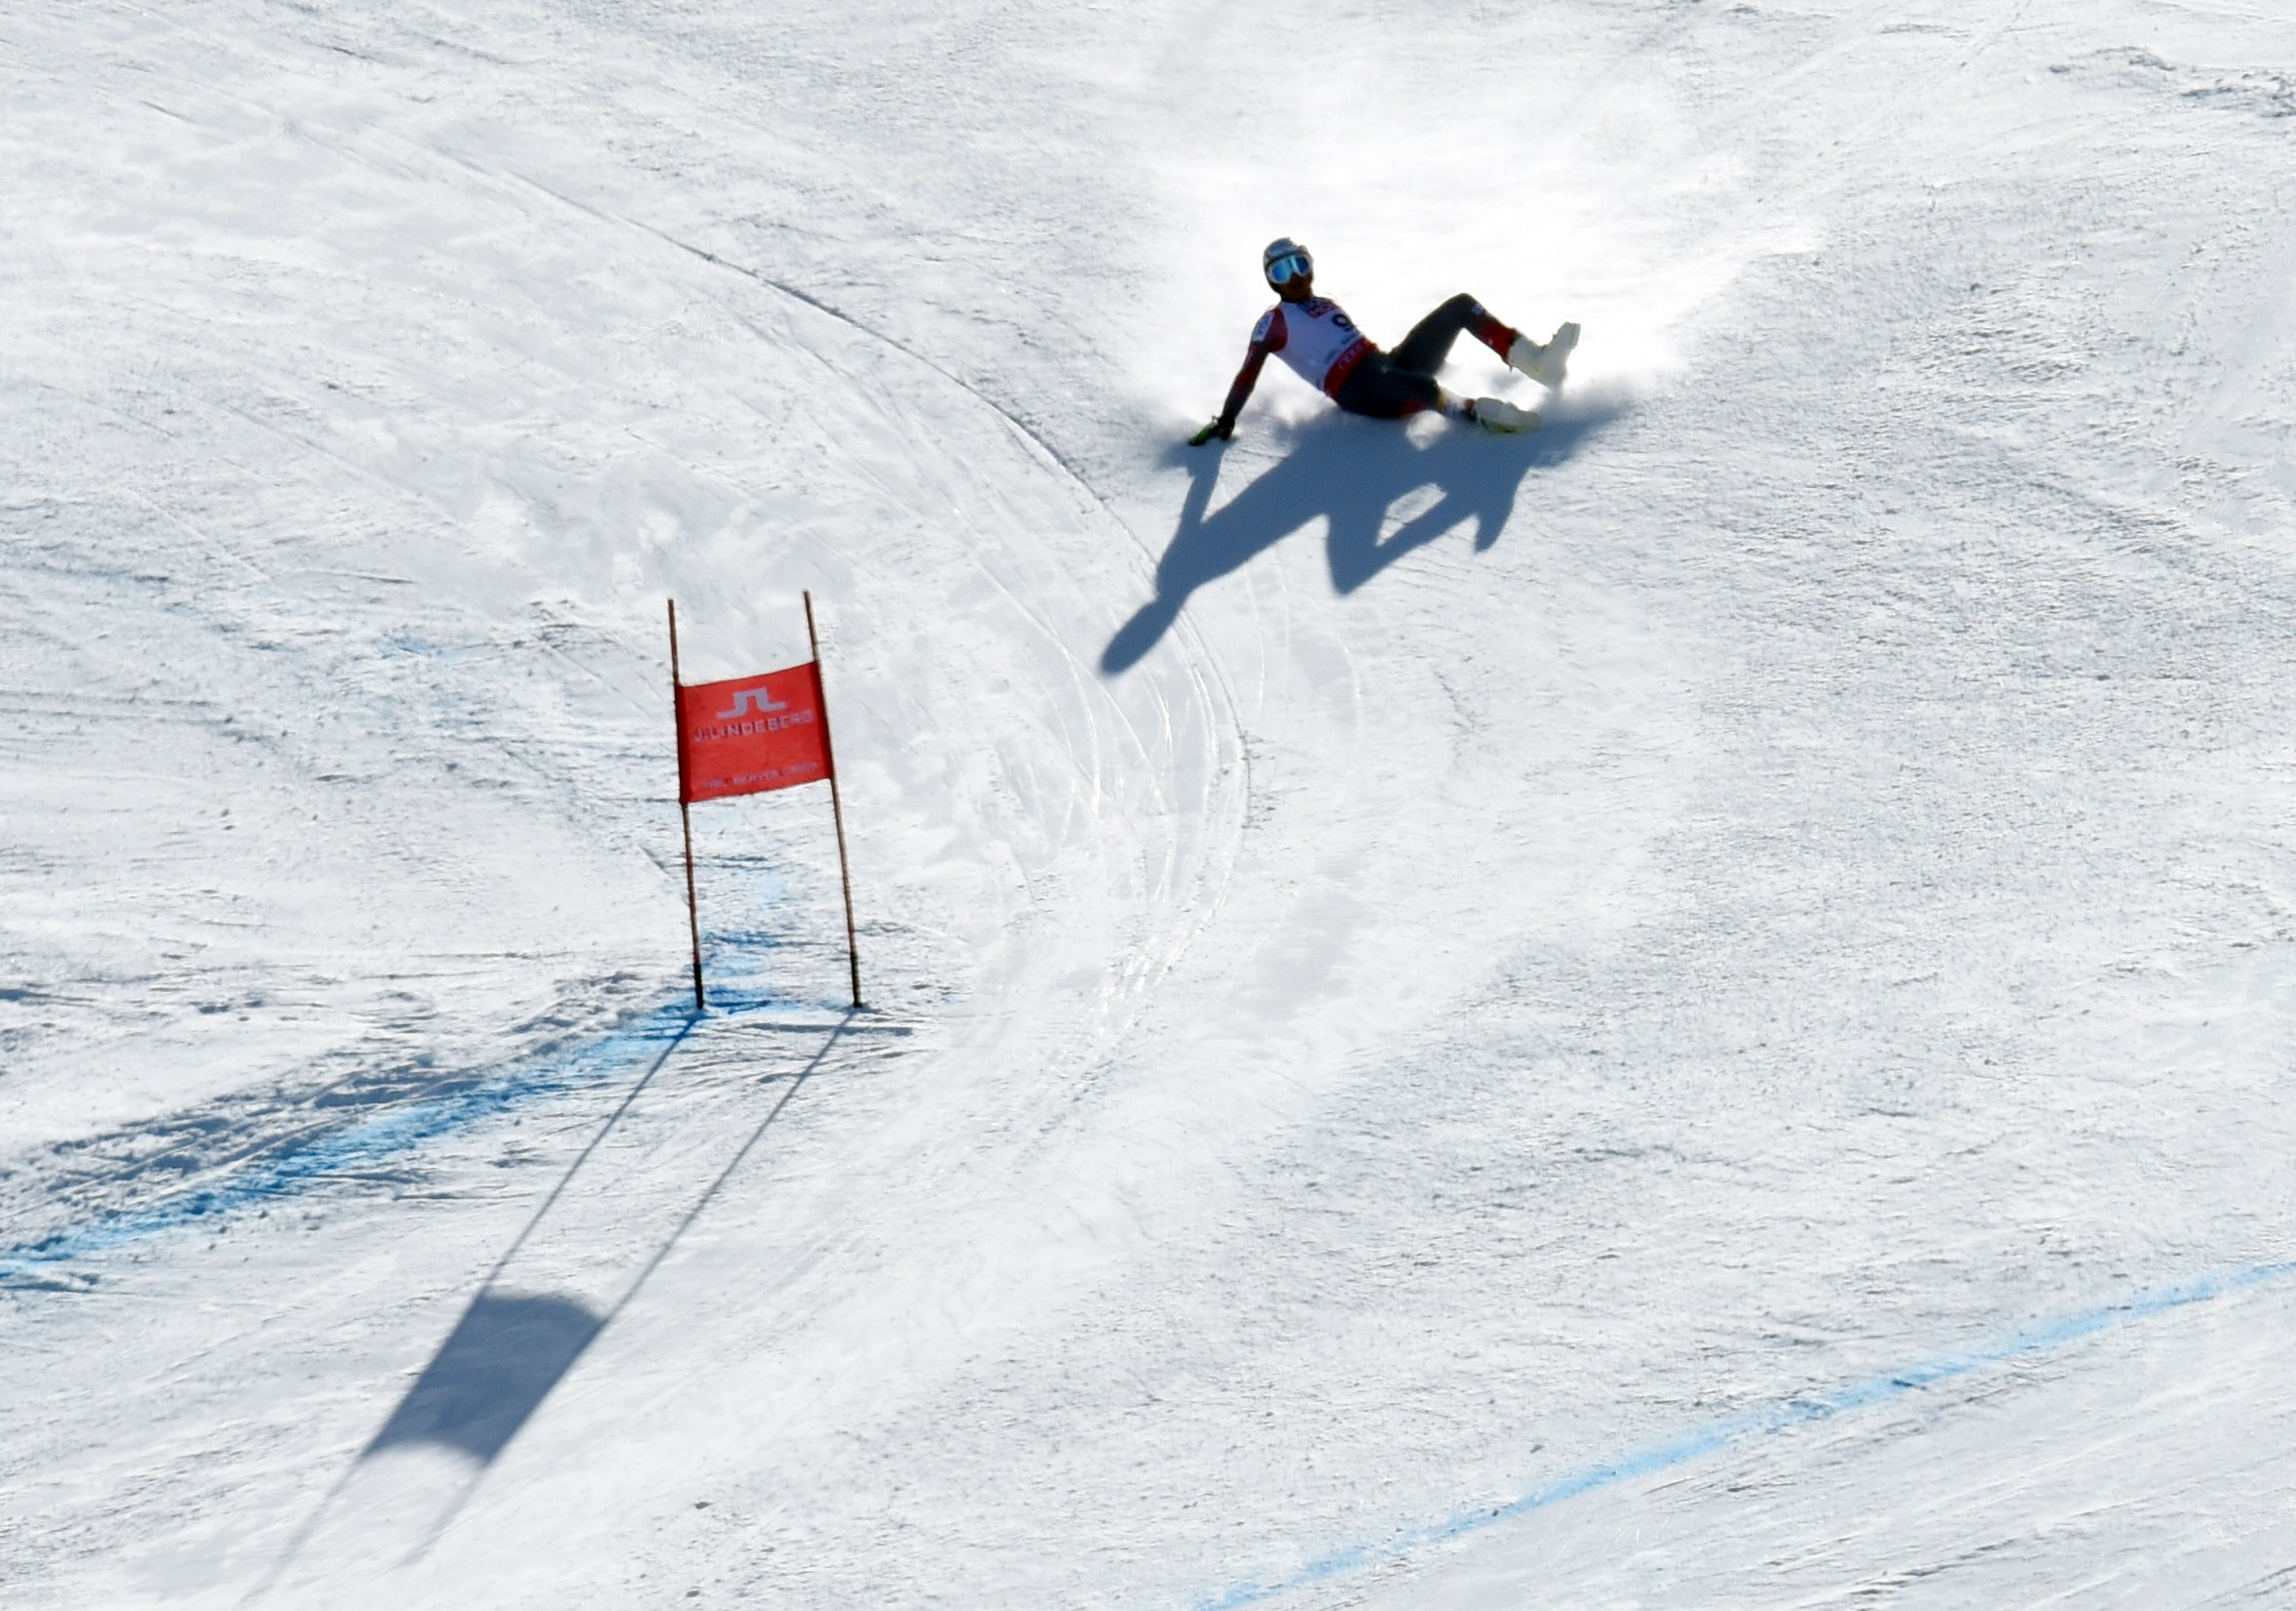 Bode Miller of the US slides down the hill after crashing during his run in the 2015 World Alpine Ski Championships men's Super G Feb. 5, 2015, in Beaver Creek. (credit: DON EMMERT/AFP/Getty Images)